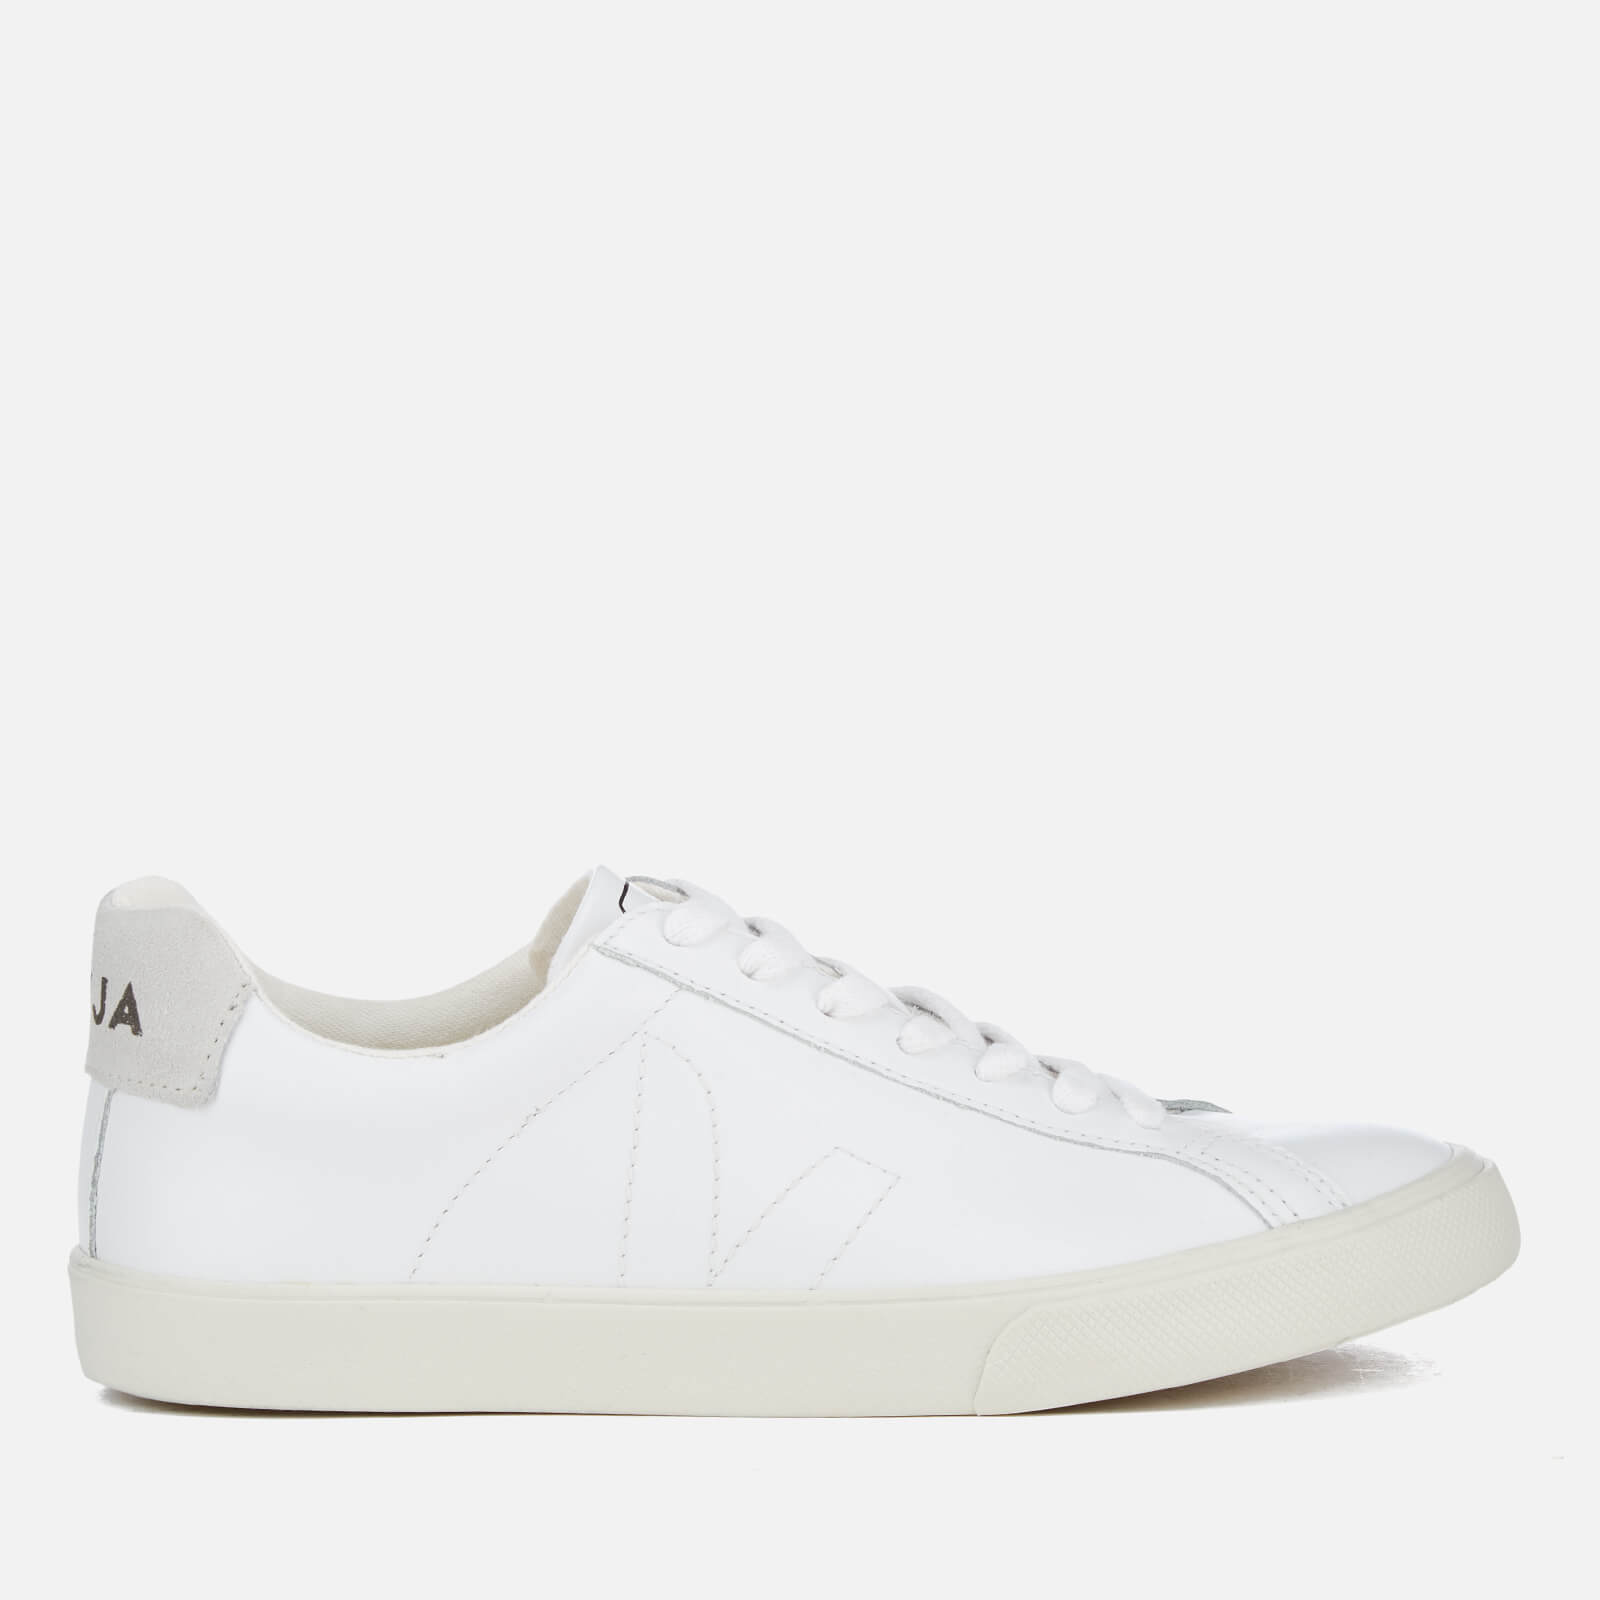 verano Adiccion Negrita  Veja Men's Esplar Leather Trainers - Extra White - Free UK Delivery  Available